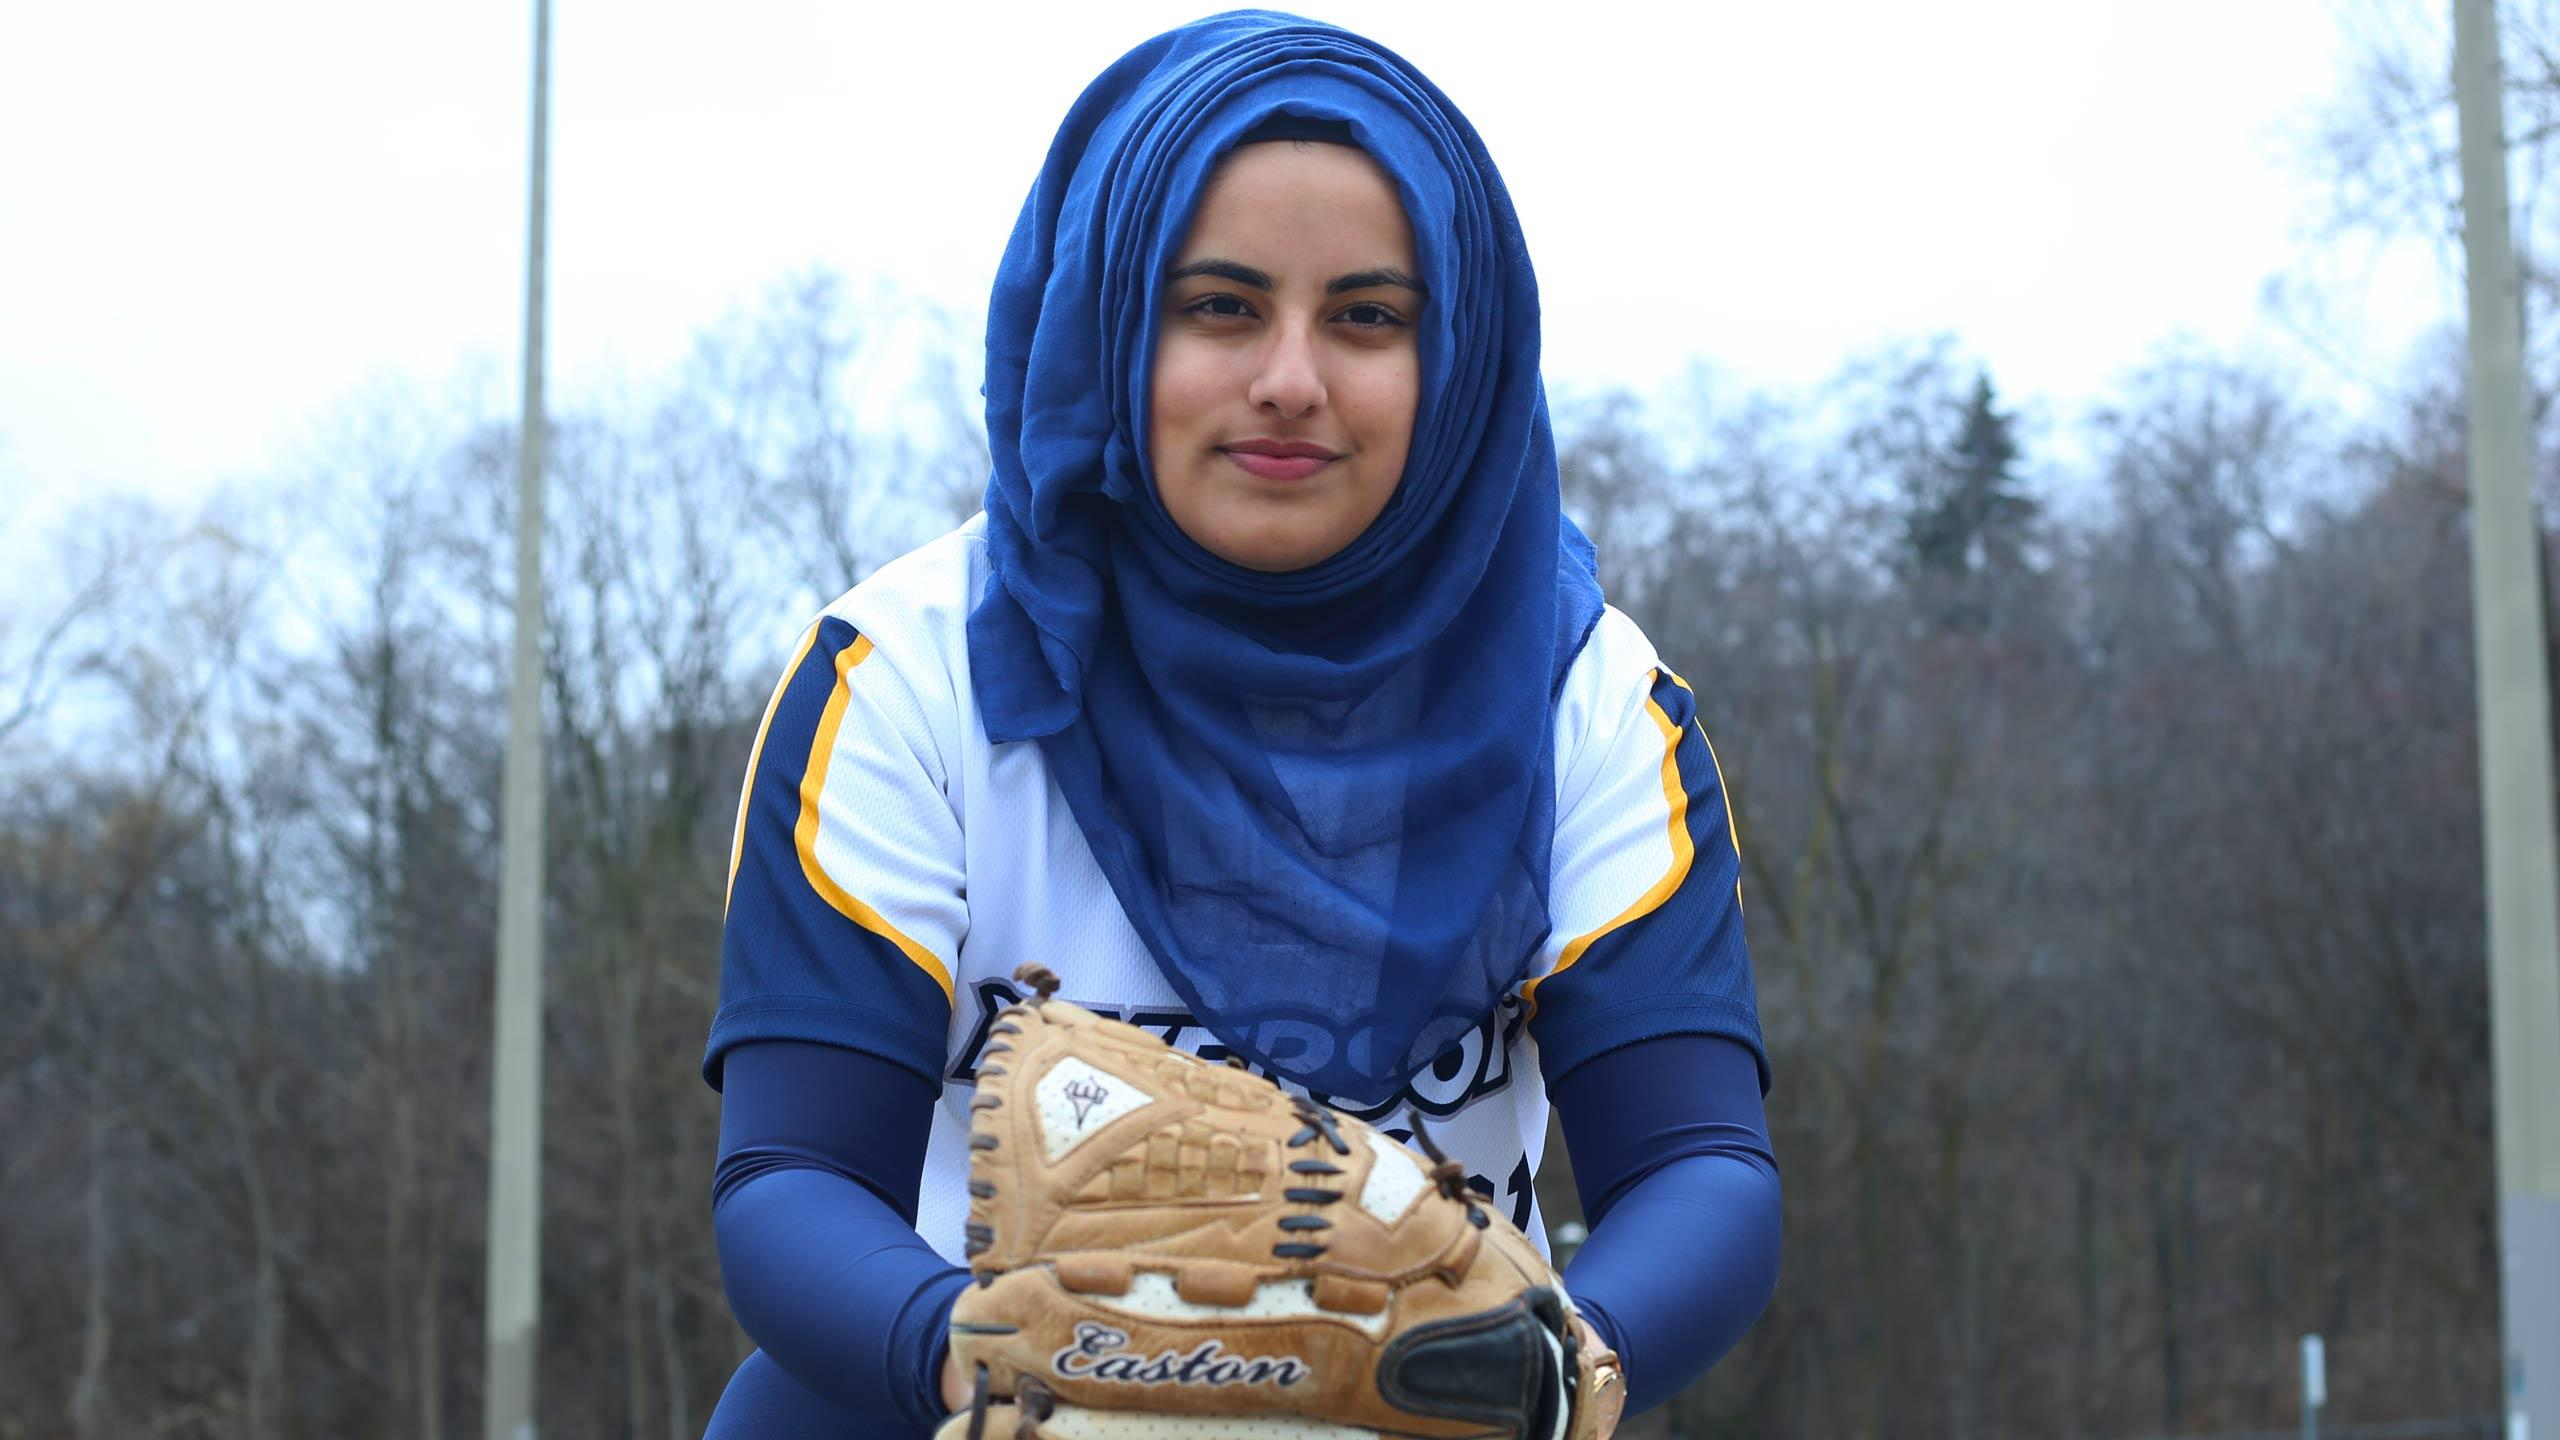 Azra Jessa at a baseball diamond with her glove.